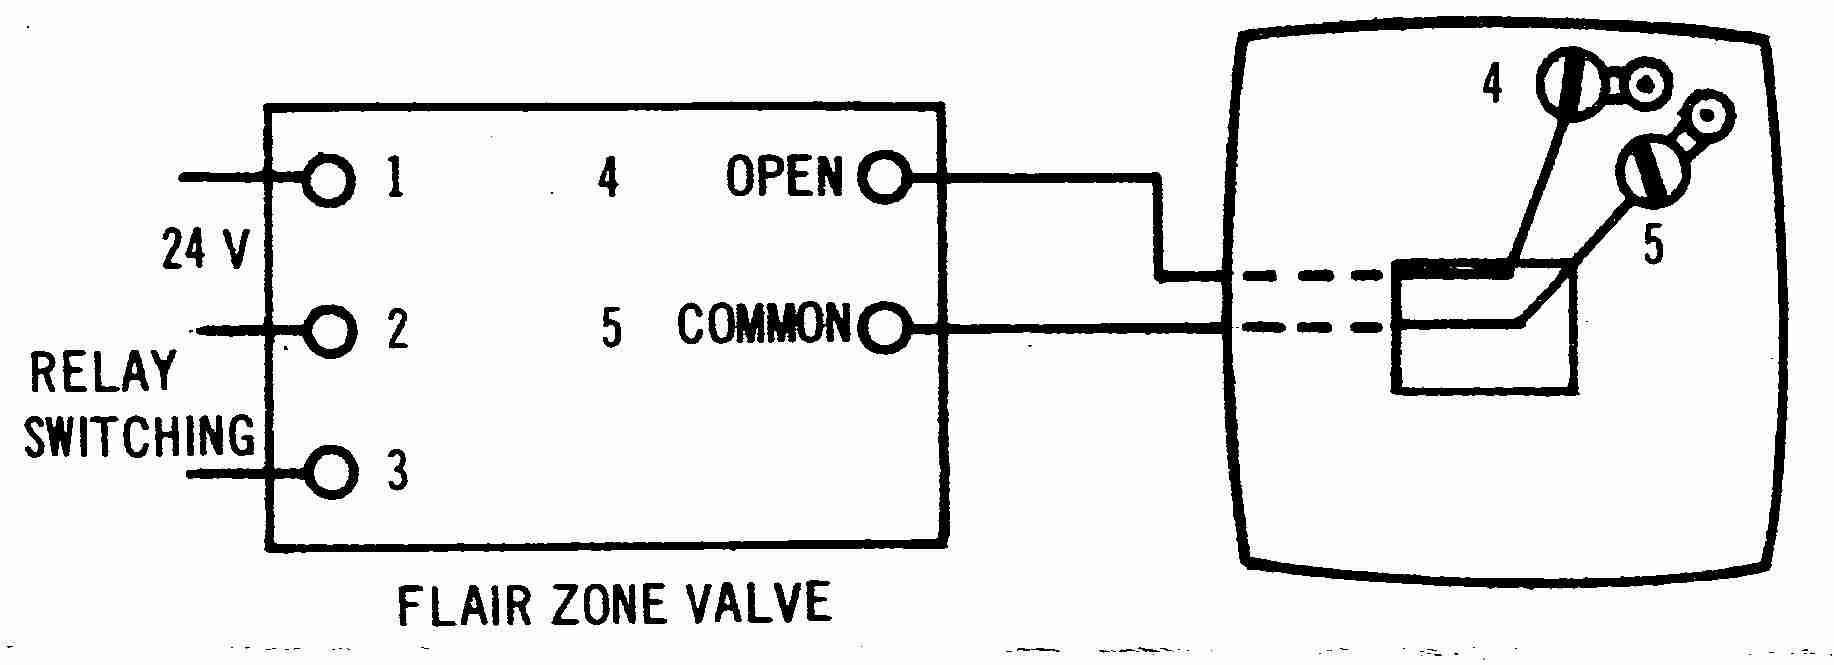 Transformer And Relay Wiring Diagram Thermostat | Wiring Library - Taco Nest And External Transformer Wiring Diagram